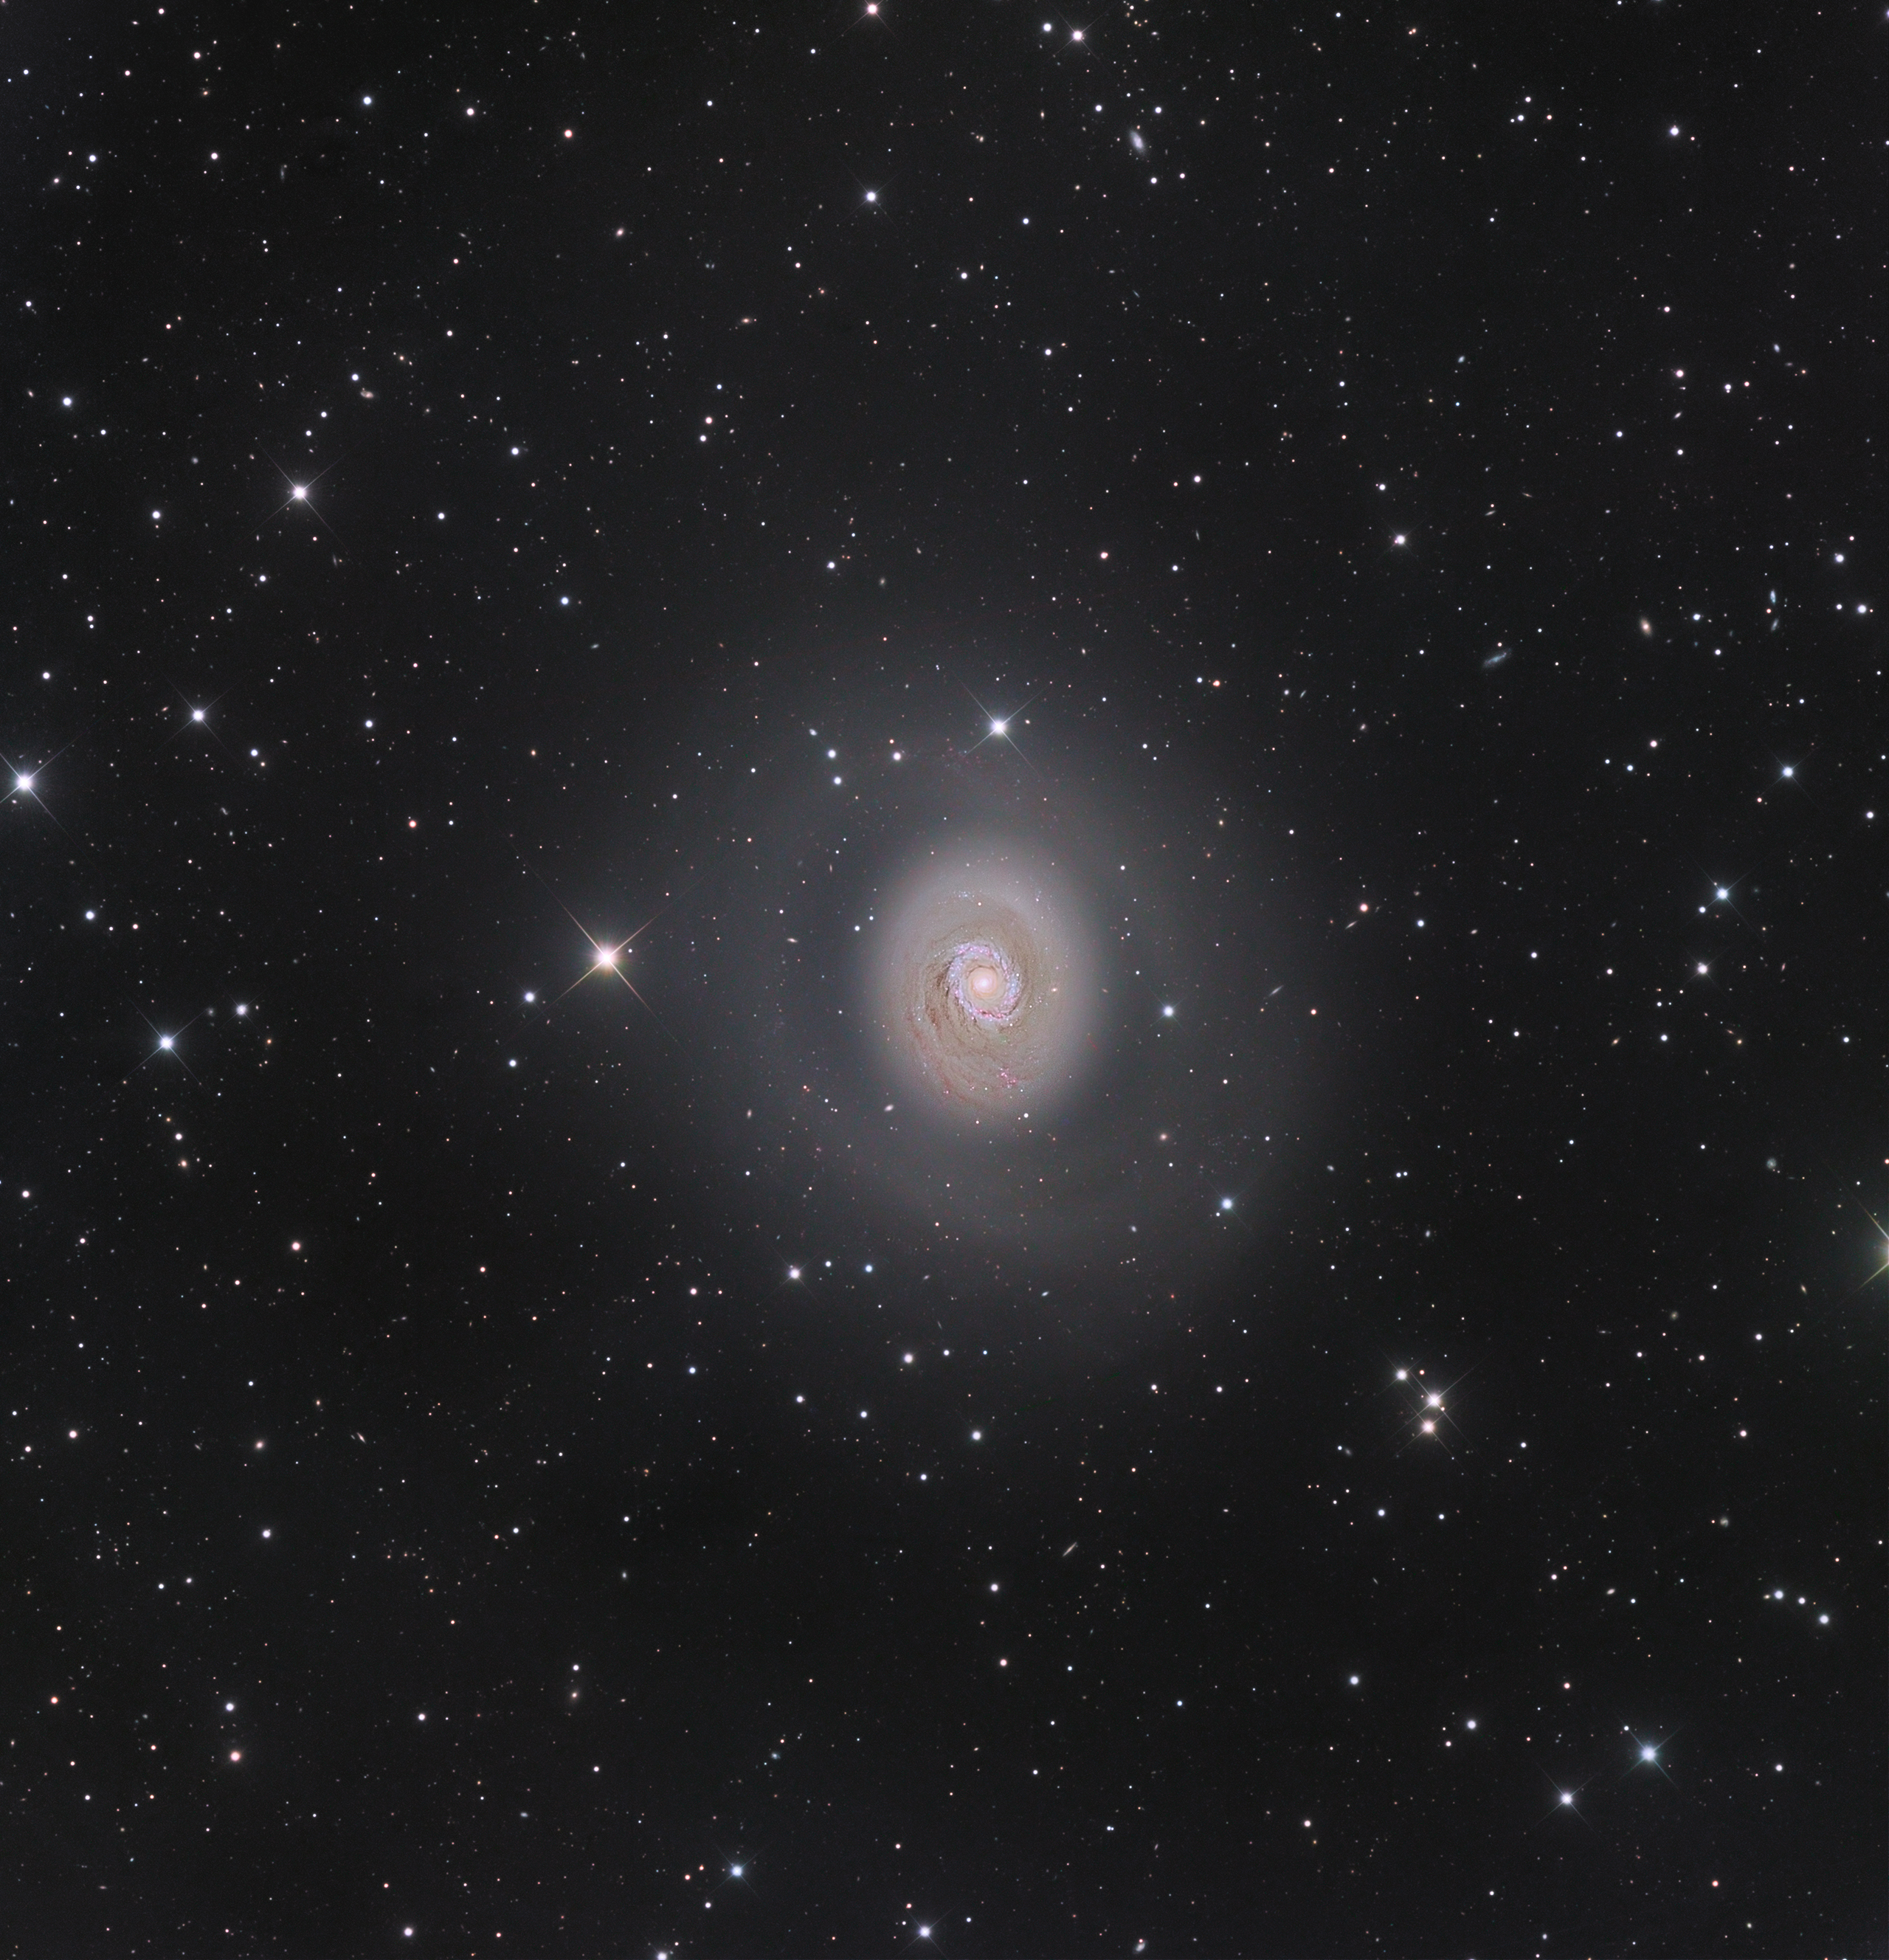 Galaxies:Nicolas set himself up for a challenge at the Castor Sirene Observatory in Provence-Alpes-Côte d'Azur, France, while trying to capture, not only the M94 galaxy, but also all the smaller galaxies in the background. His efforts paid off, with this winning image.